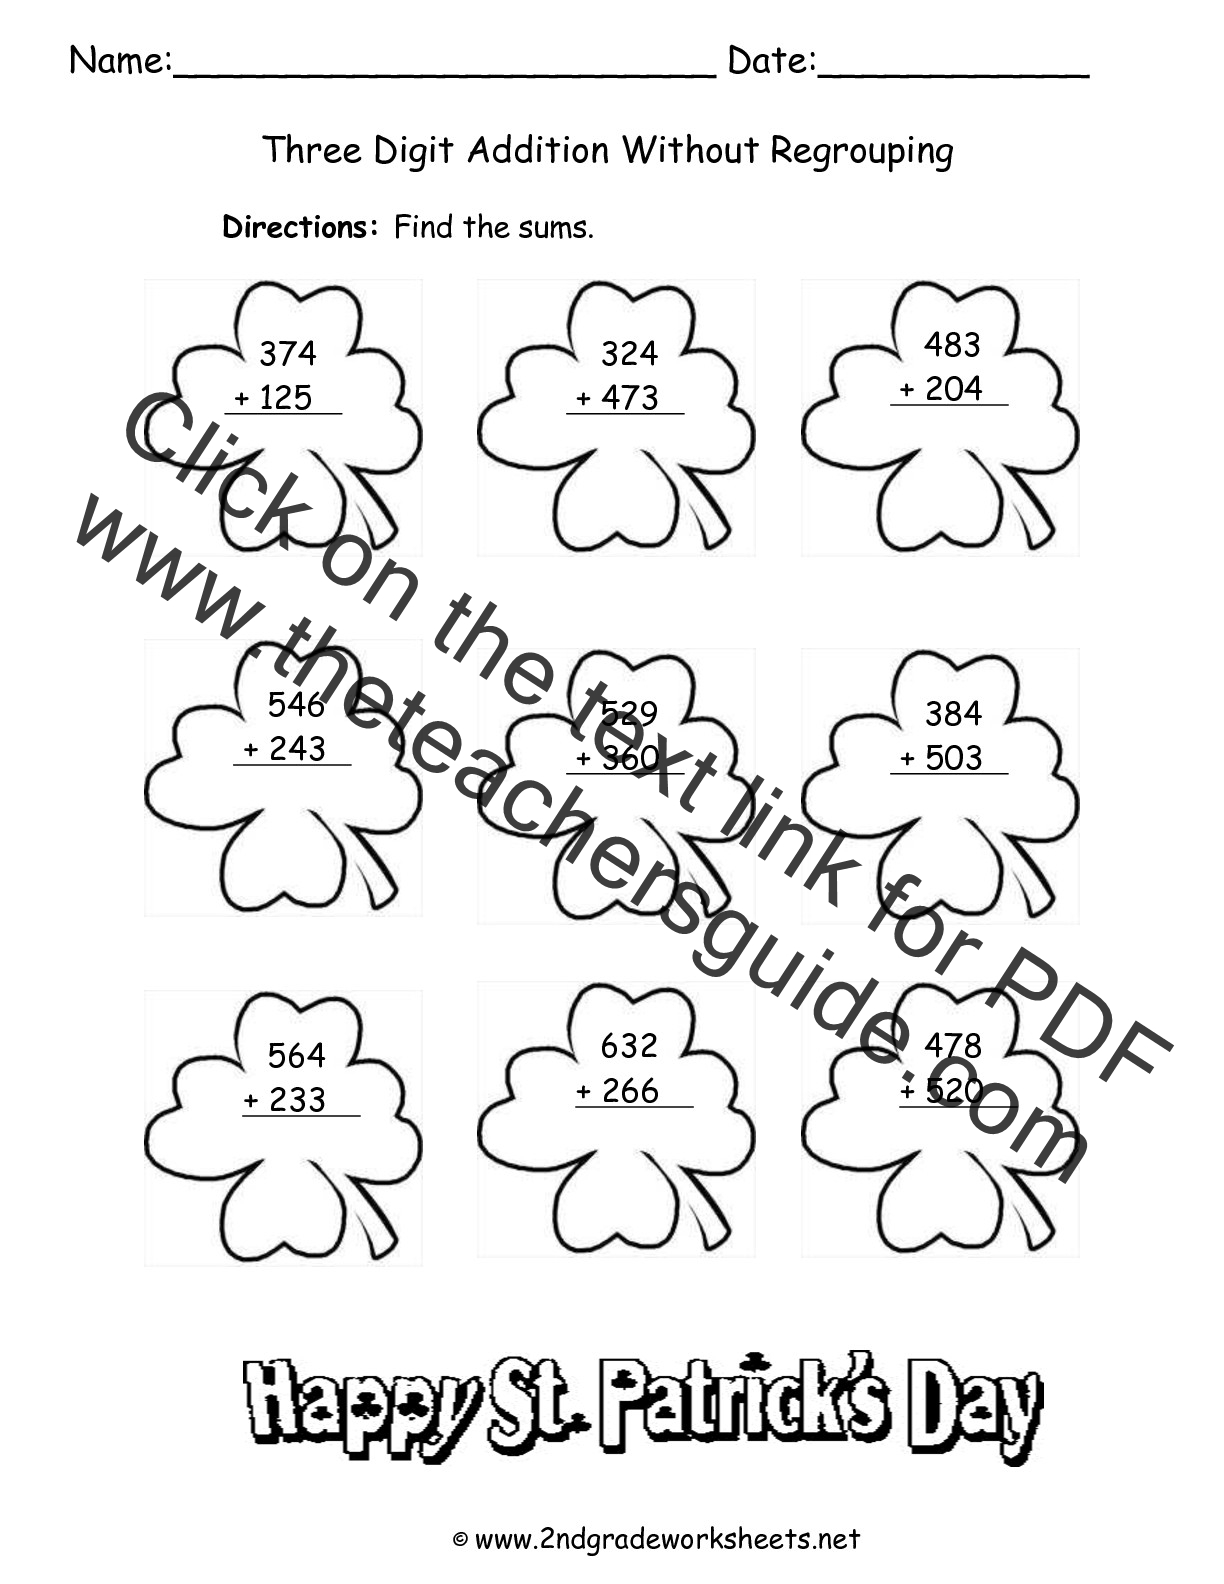 photo regarding St Patrick's Day Worksheets Free Printable named St. Patricks Working day Printouts and Worksheets